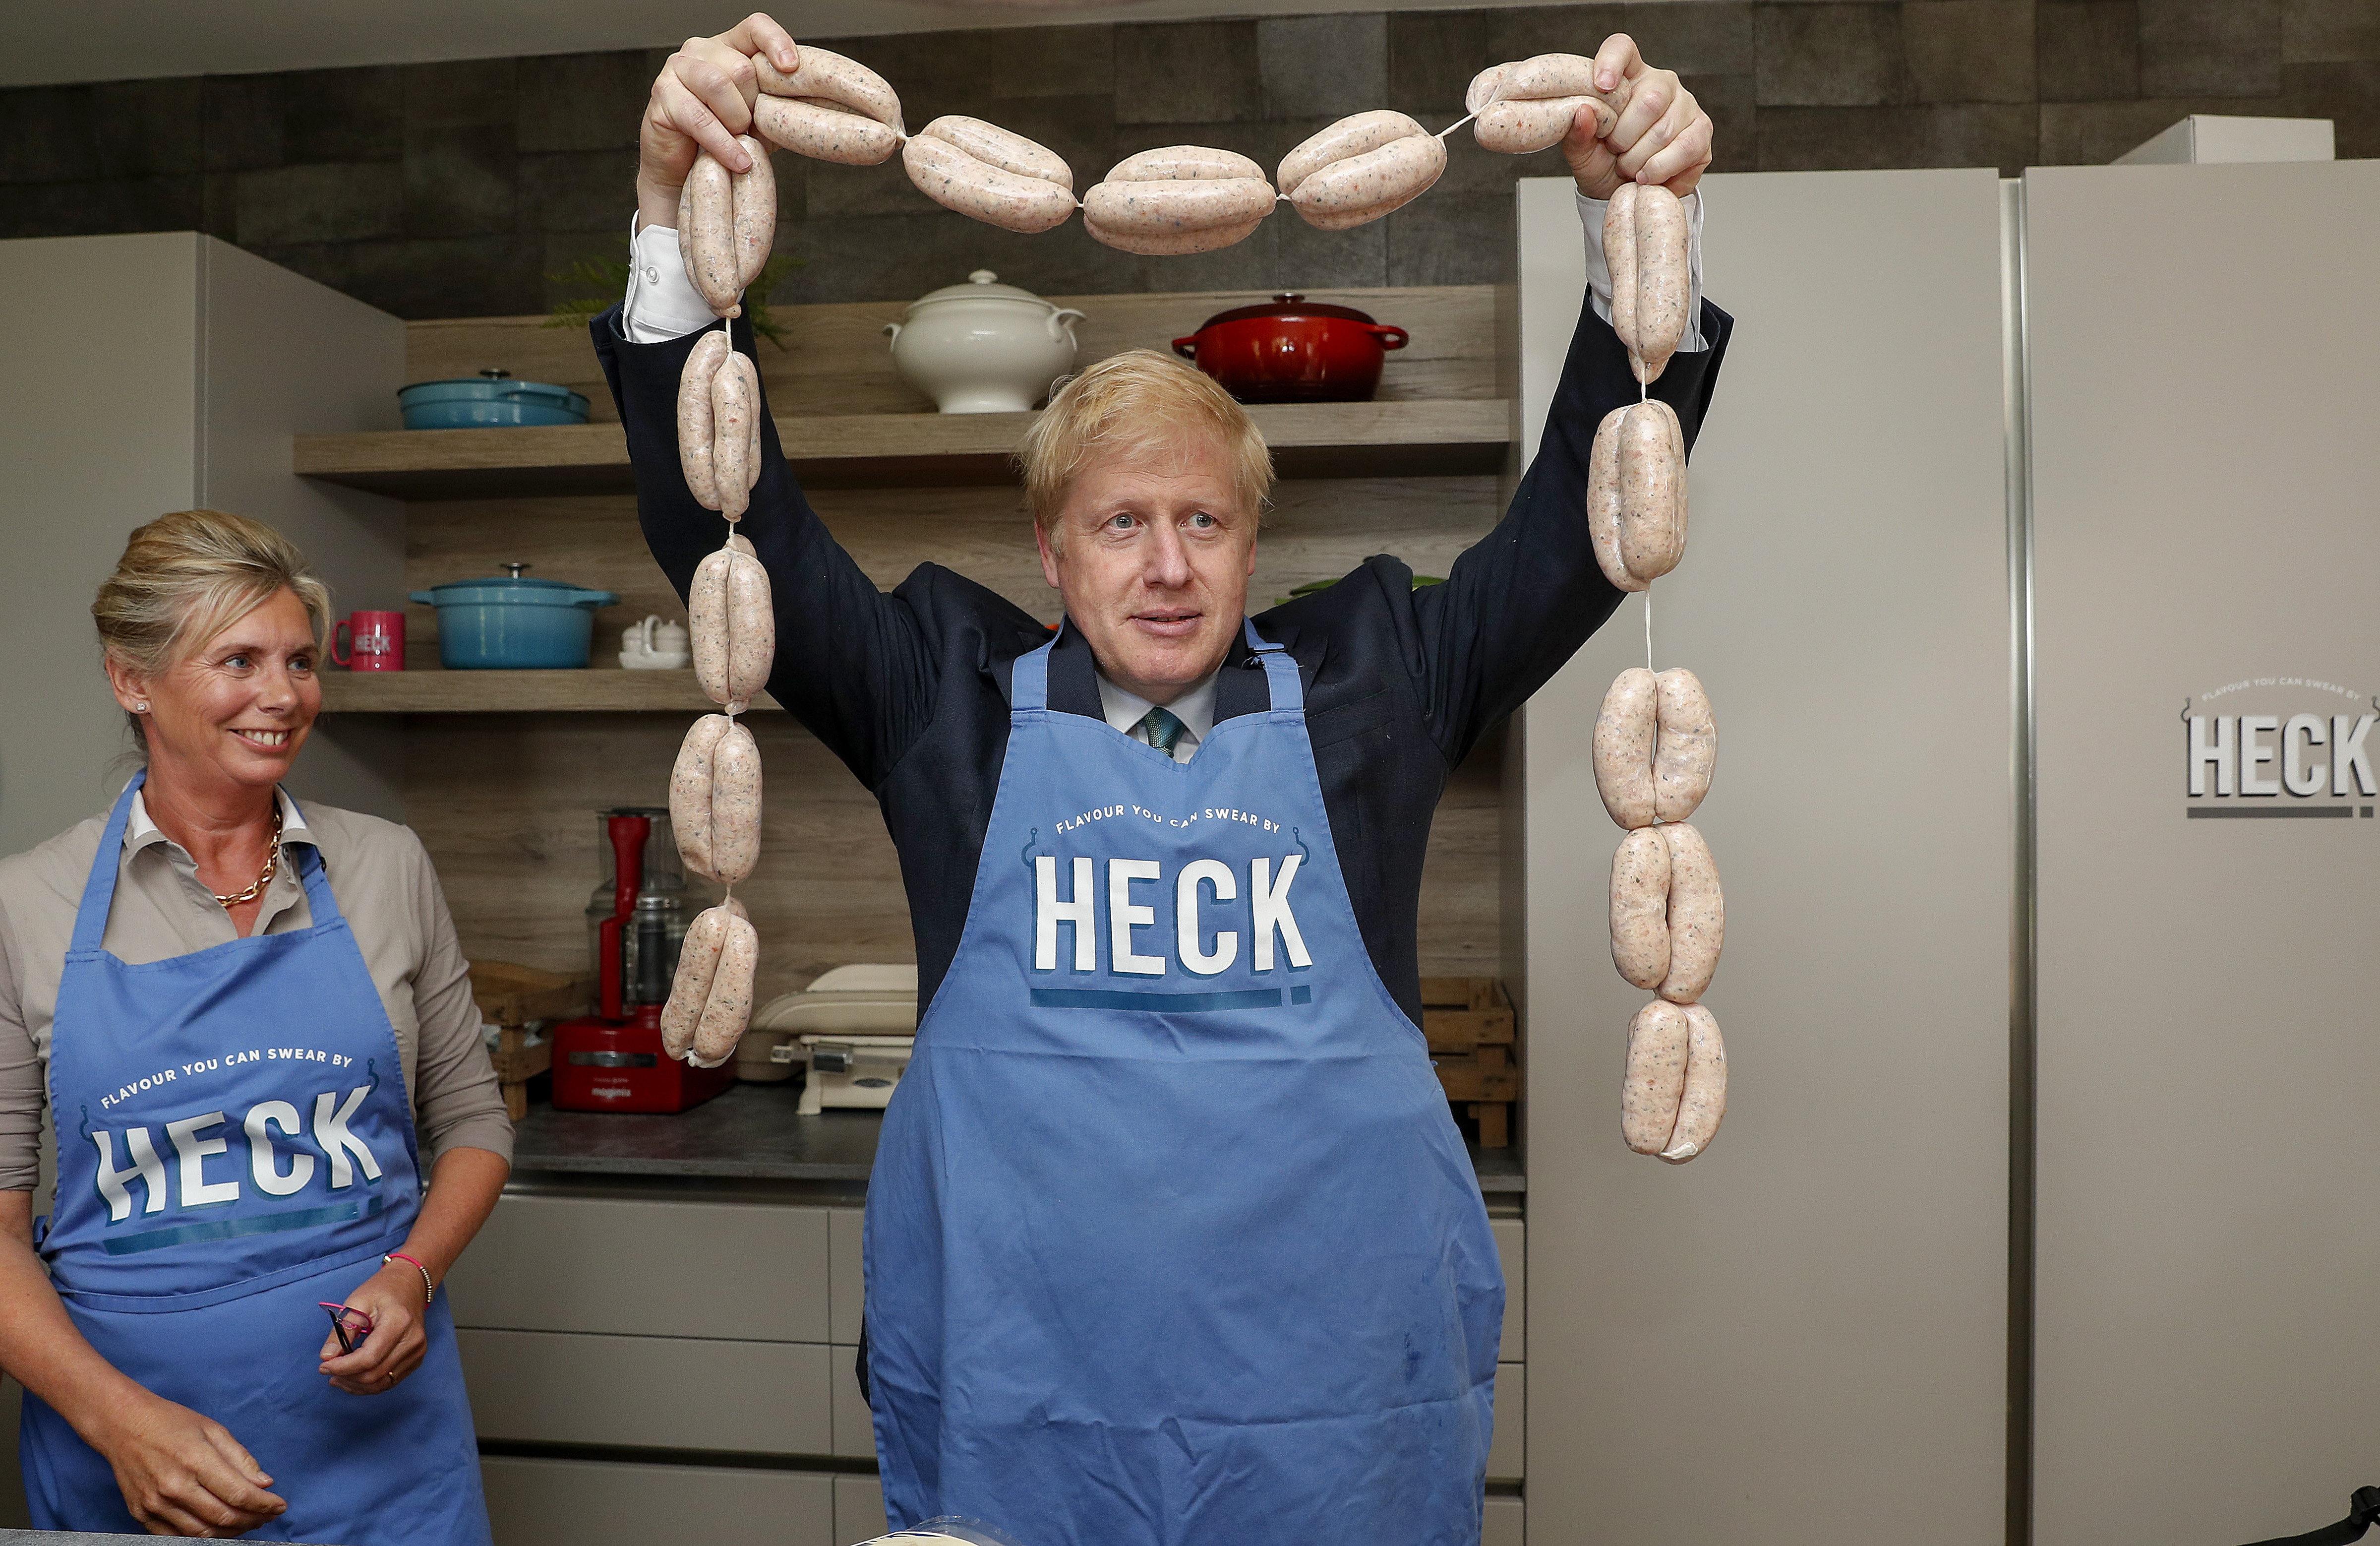 Conservative party leadership candidate Boris Johnson holds up a string of sausages around his neck during a visit to Heck Foods Ltd. headquarters near Bedale in North Yorkshire ahead of the latest hustings in York later.